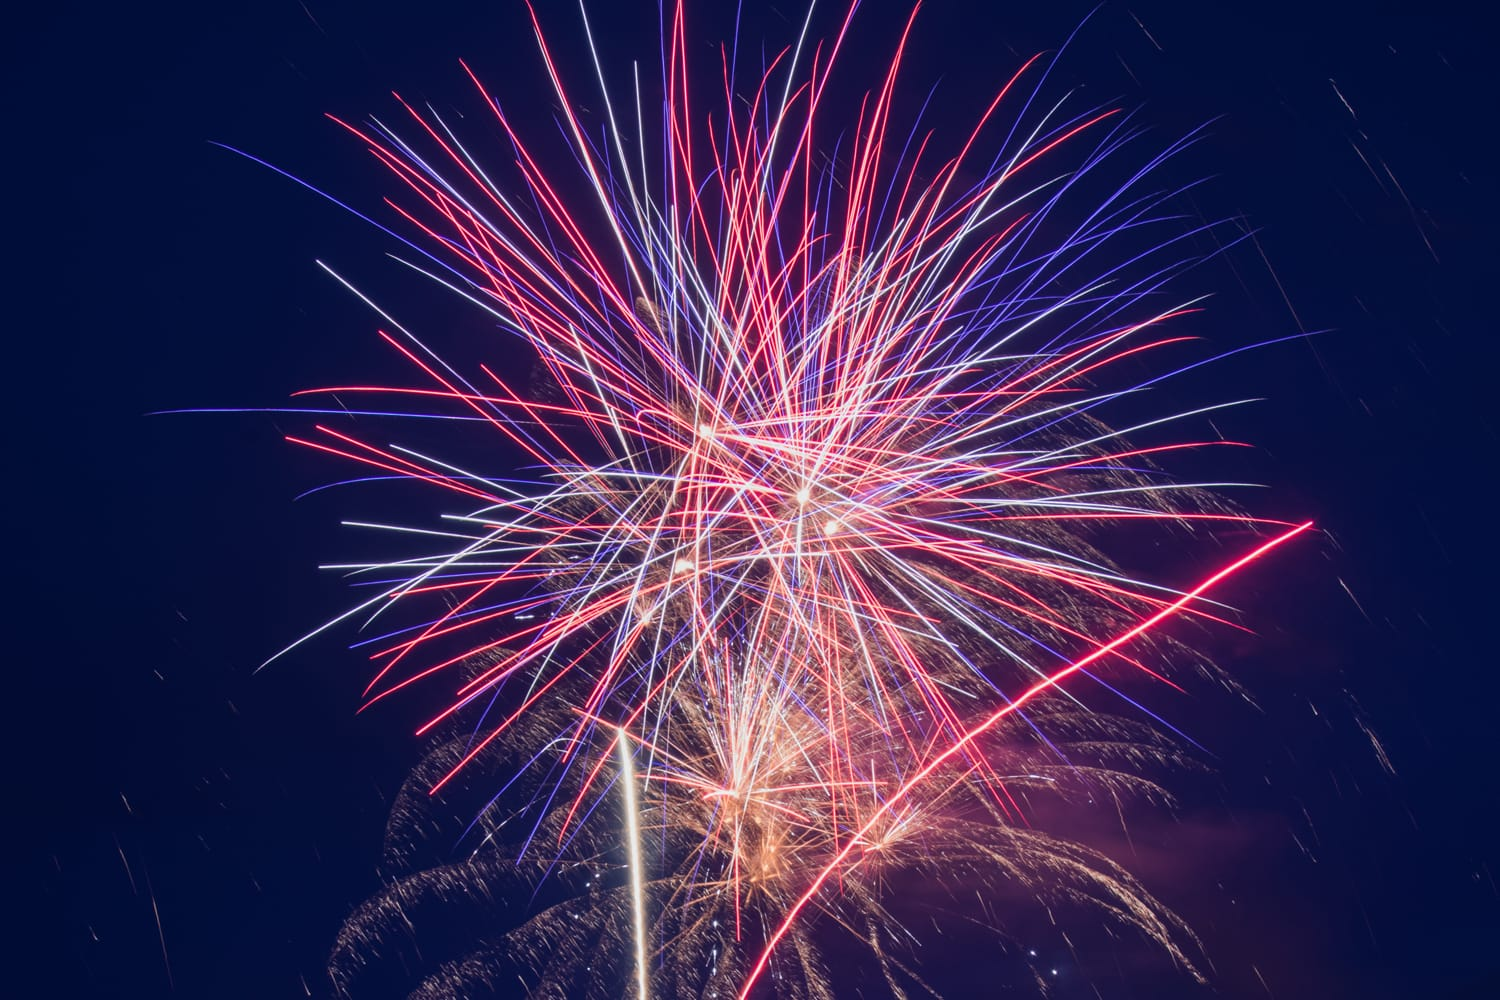 Fireworks explode over the Tchefuncte River at Madisonville, Louisiana